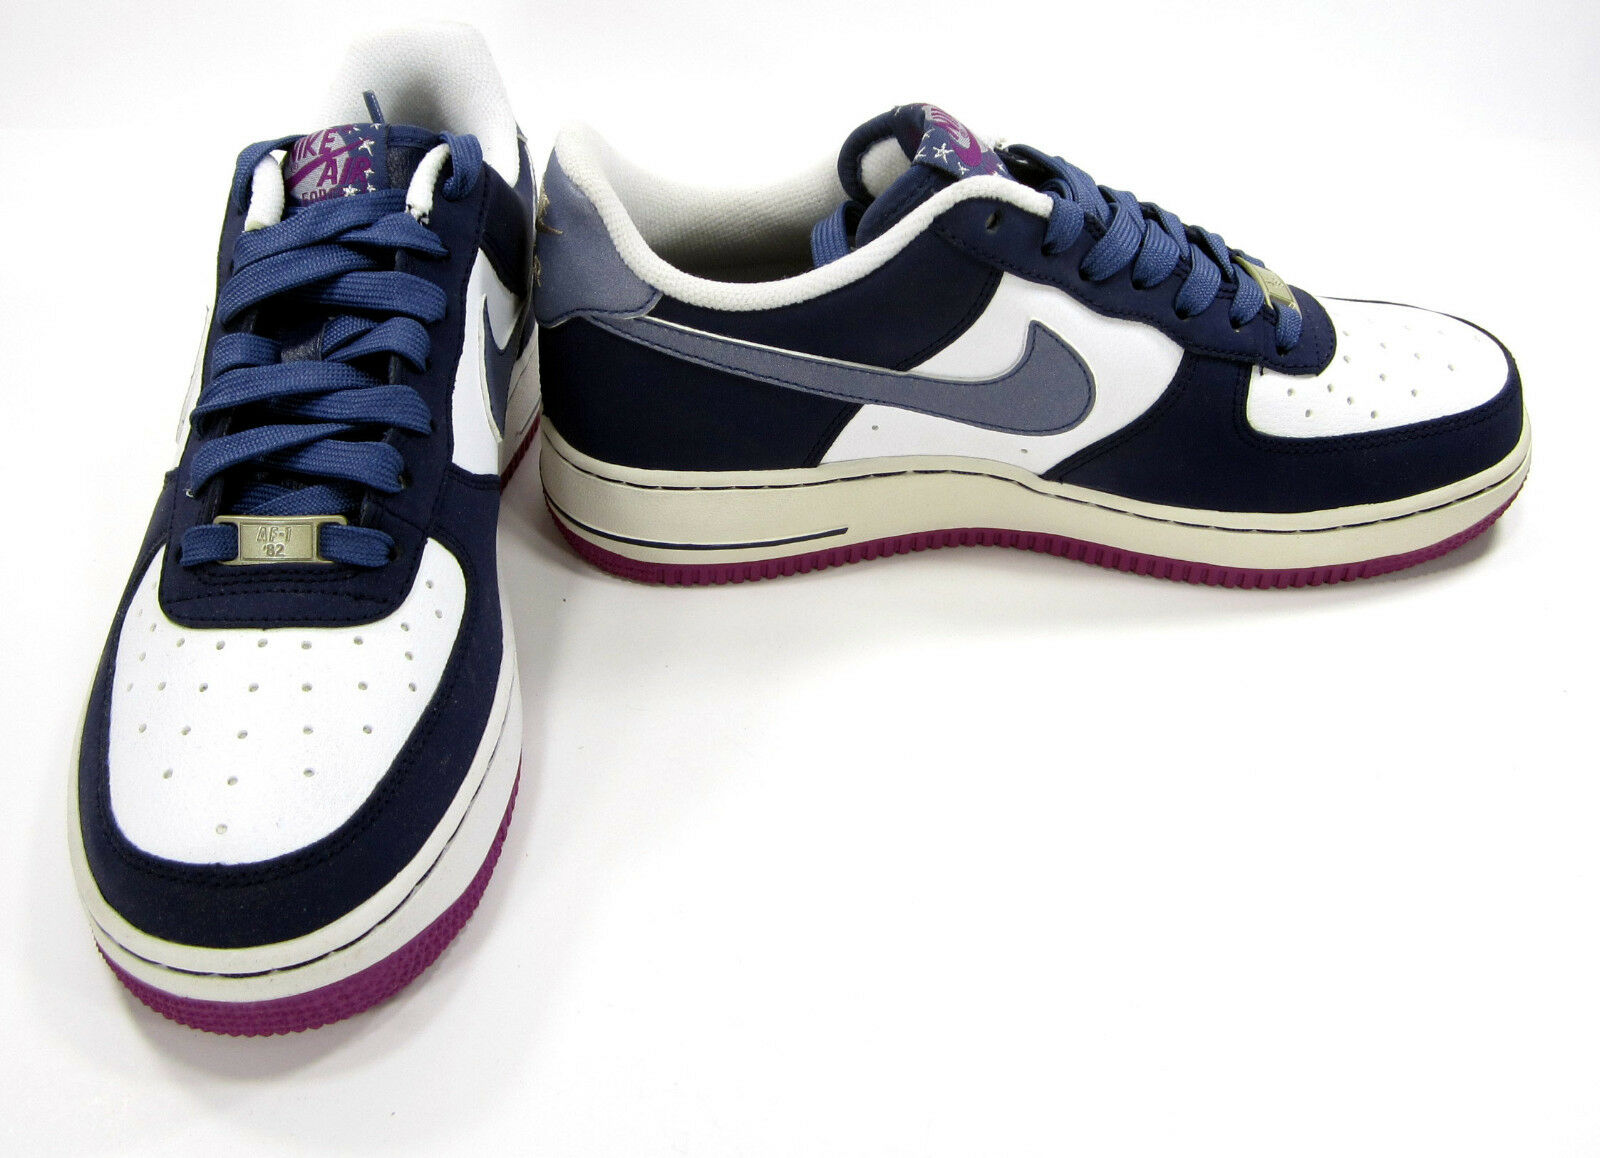 Nike Shoes Air Force 1 Low White/Blue/Purple Sneakers Comfortable Wild casual shoes